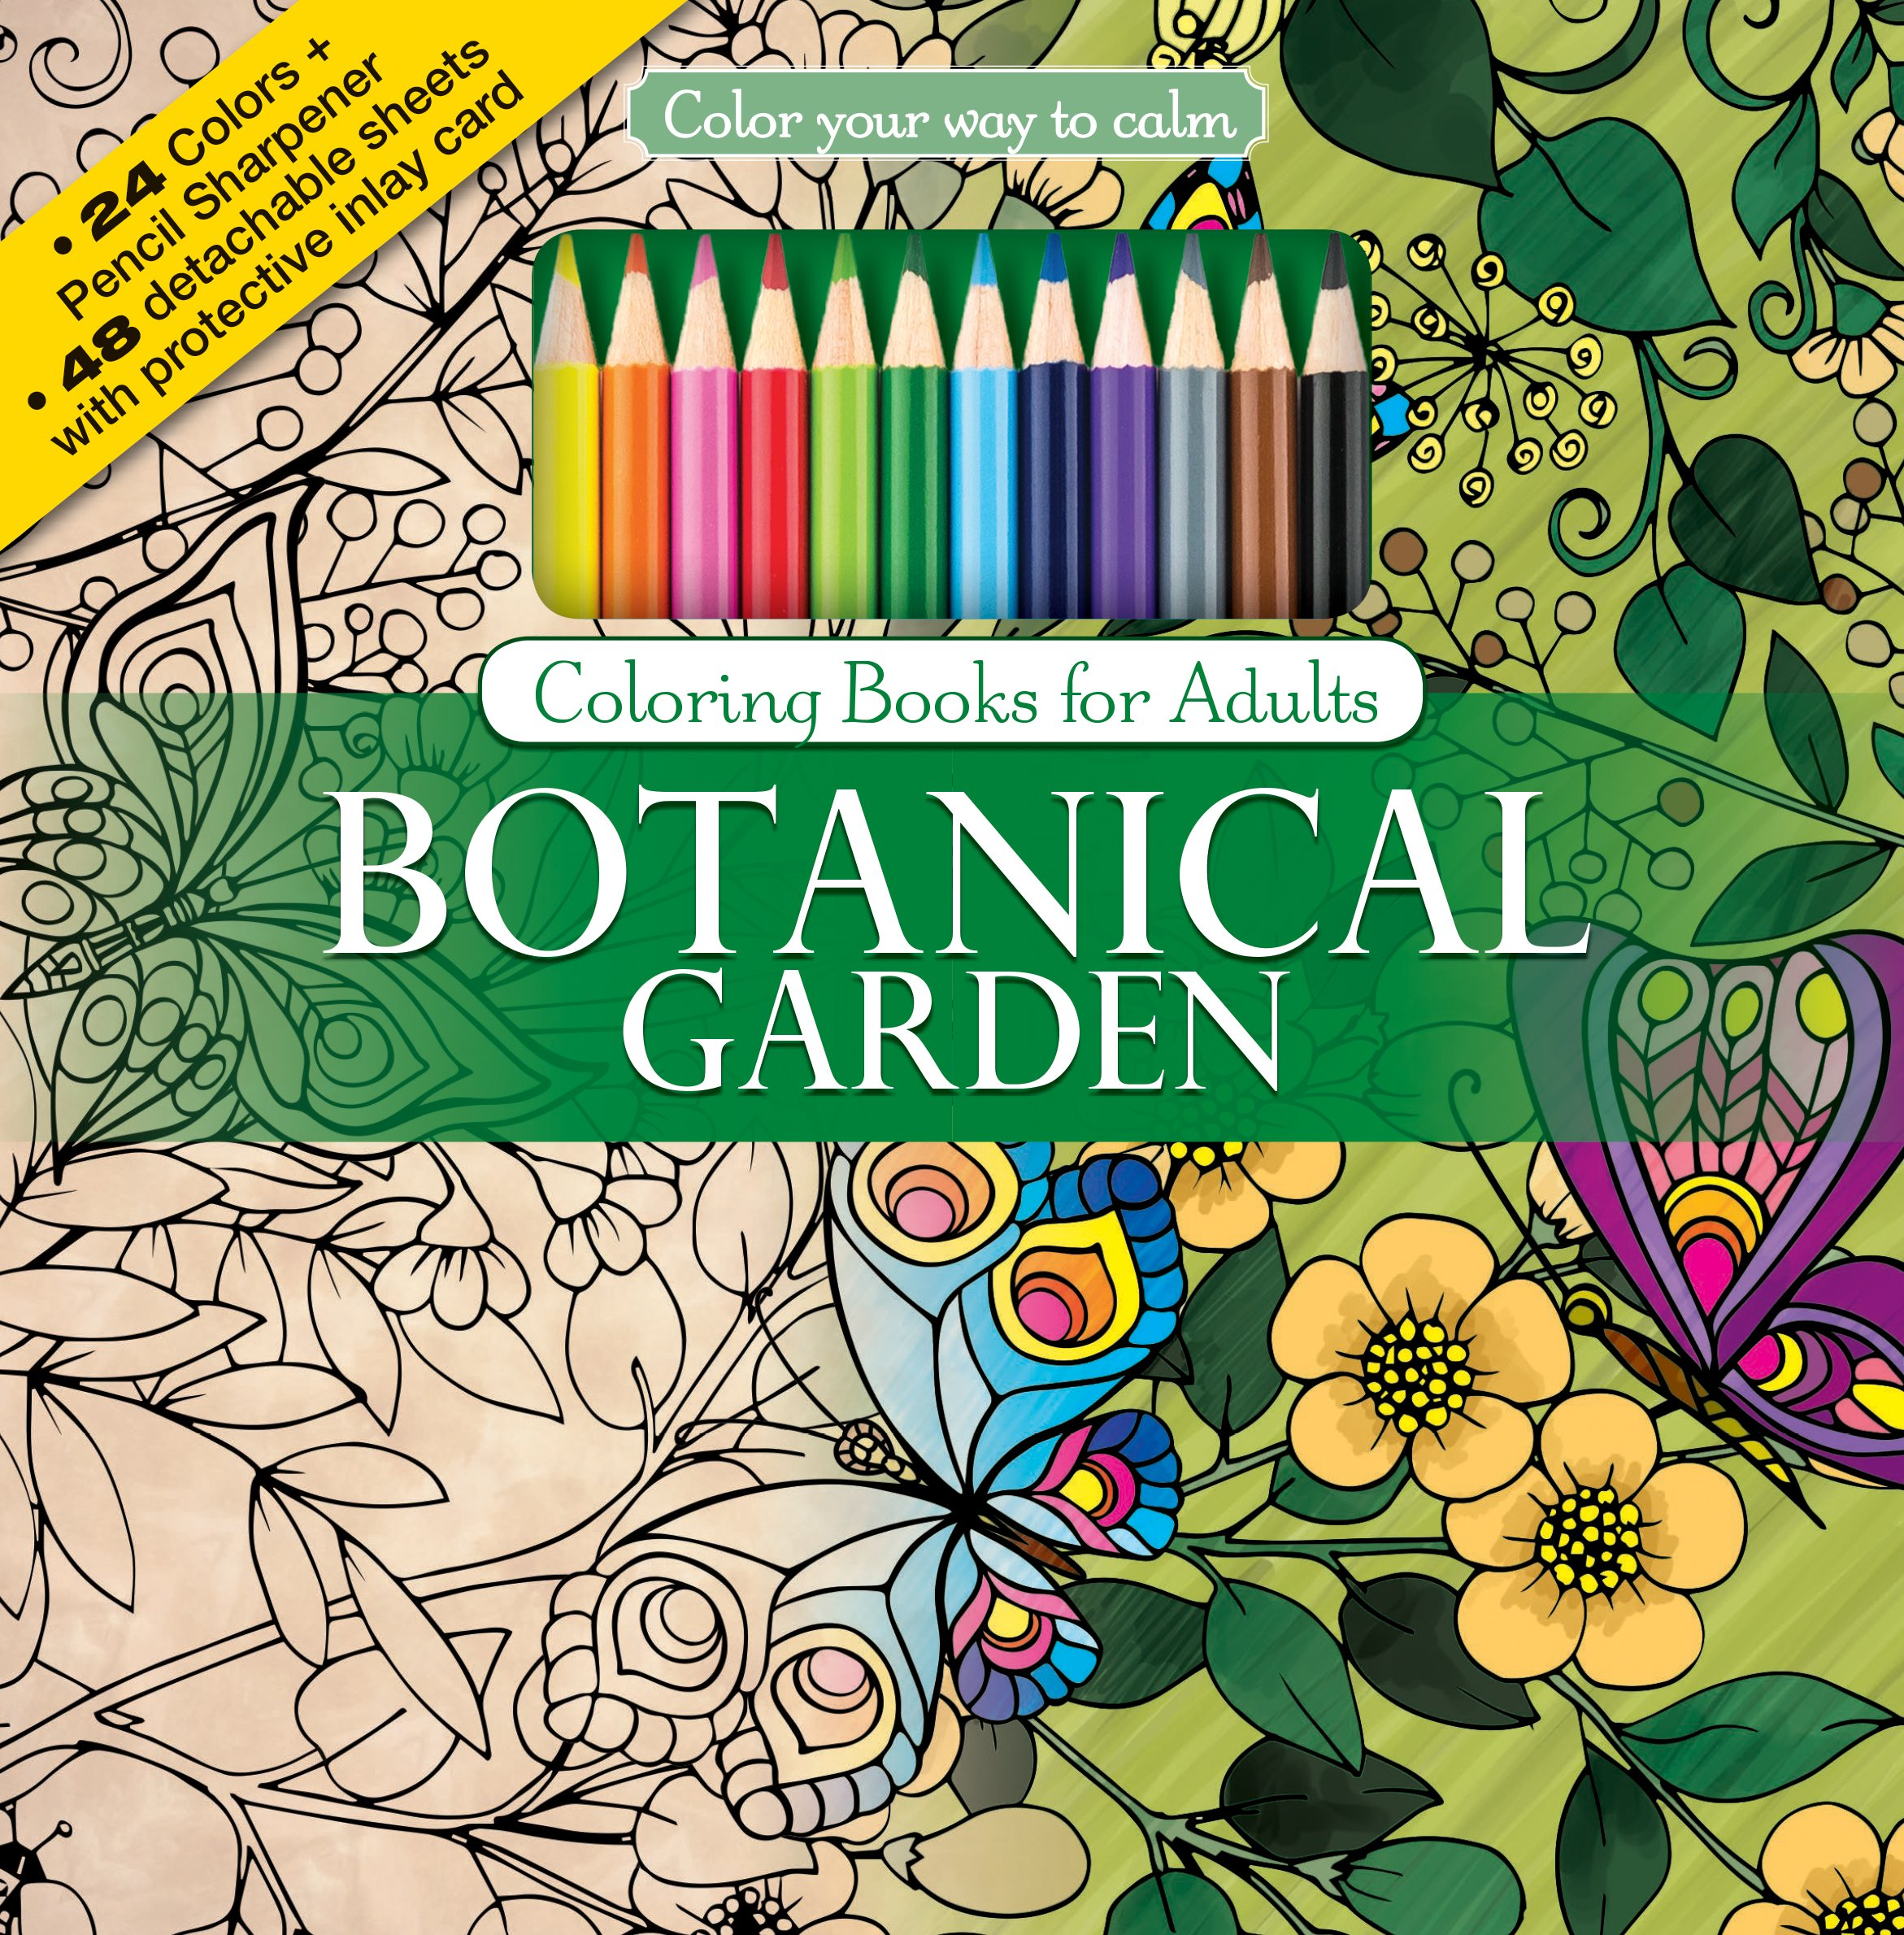 Amazon.com: Botanical Garden Adult Coloring Book Set With 24 ...